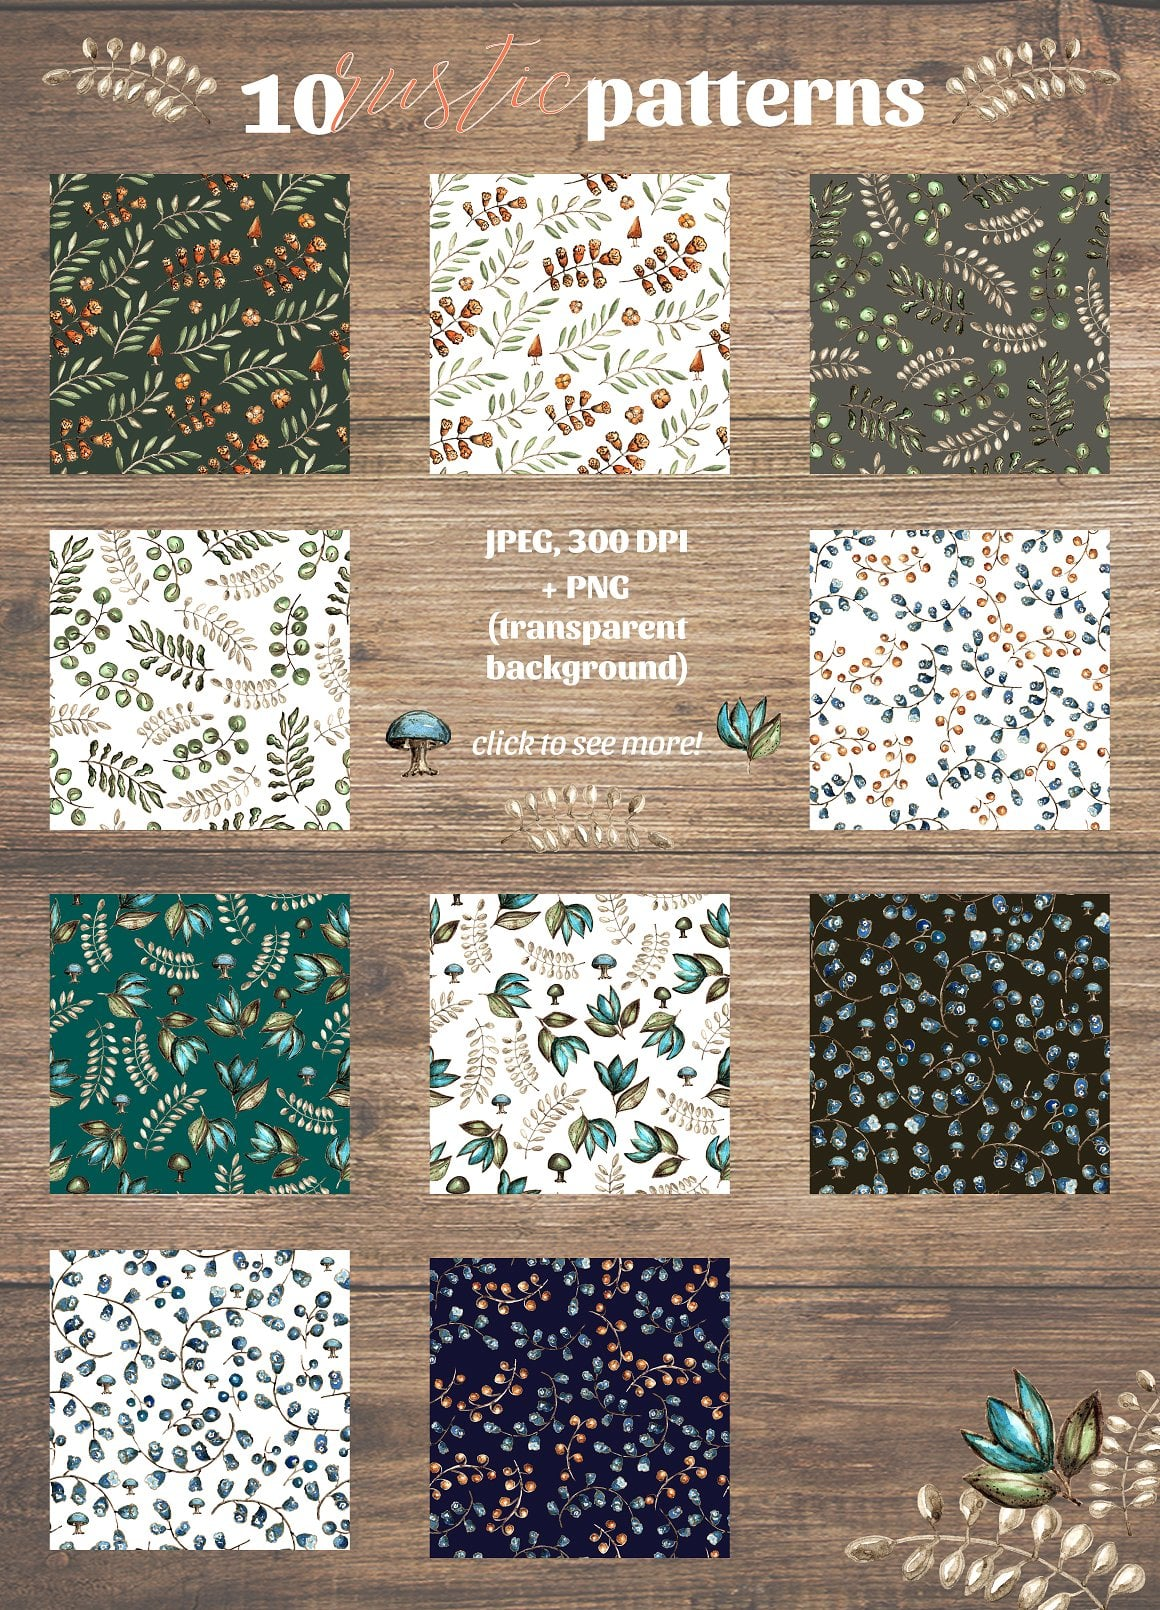 10 Rustic Patterns - $5 ONLY - presentation2 1 4